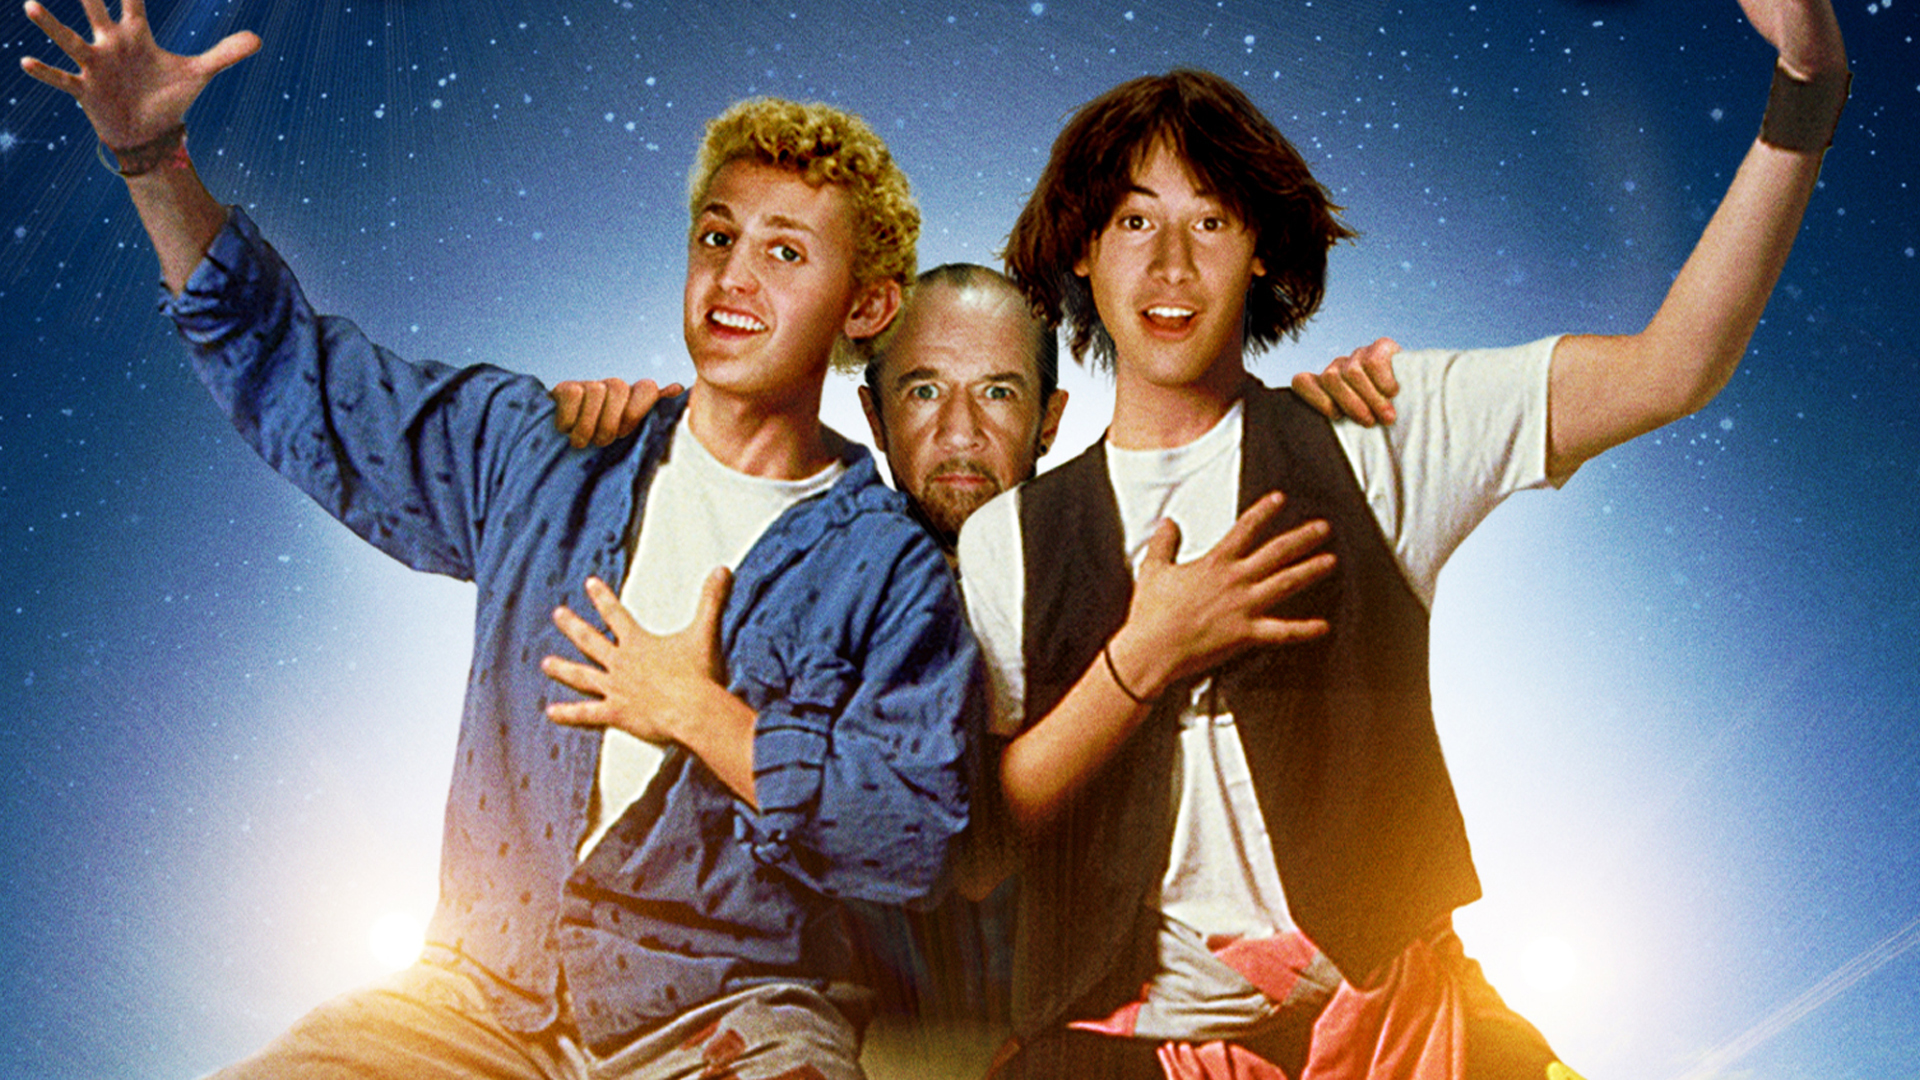 HQ Bill & Ted's Excellent Adventure Wallpapers | File 1911.45Kb